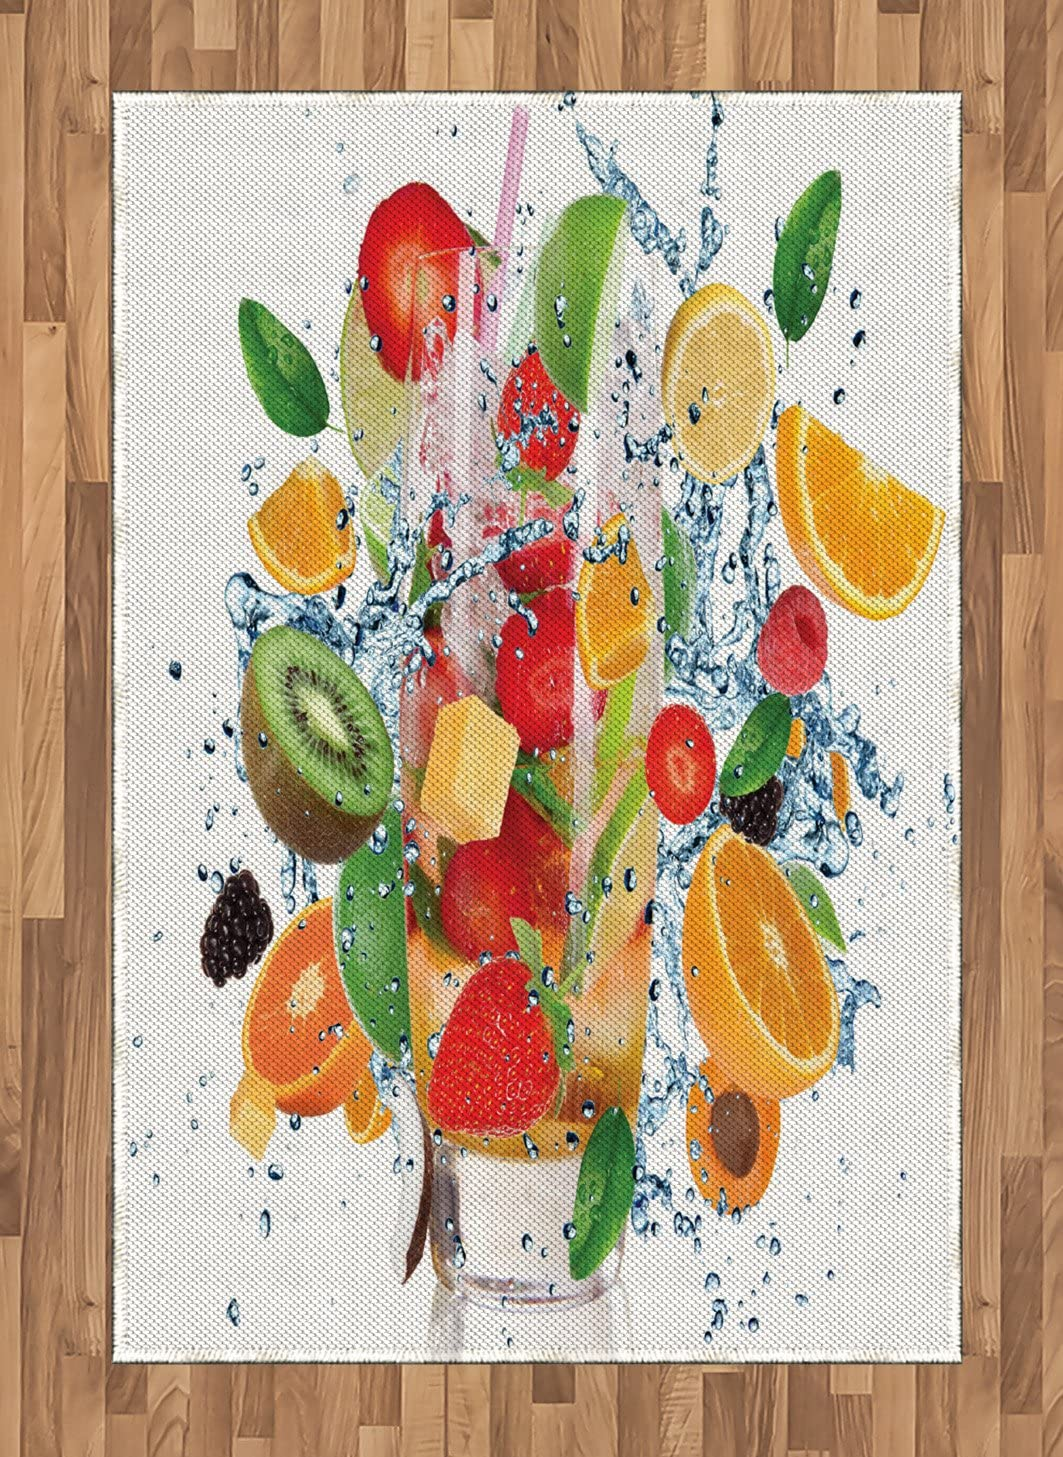 Lunarable Fruits Area Rug, Fruit Cocktail with Splashing Liquid Strawberry Tropics Cheerful Fun Summertime, Flat Woven Accent Rug for Living Room Bedroom Dining Room, 4' X 5.7', Multicolor